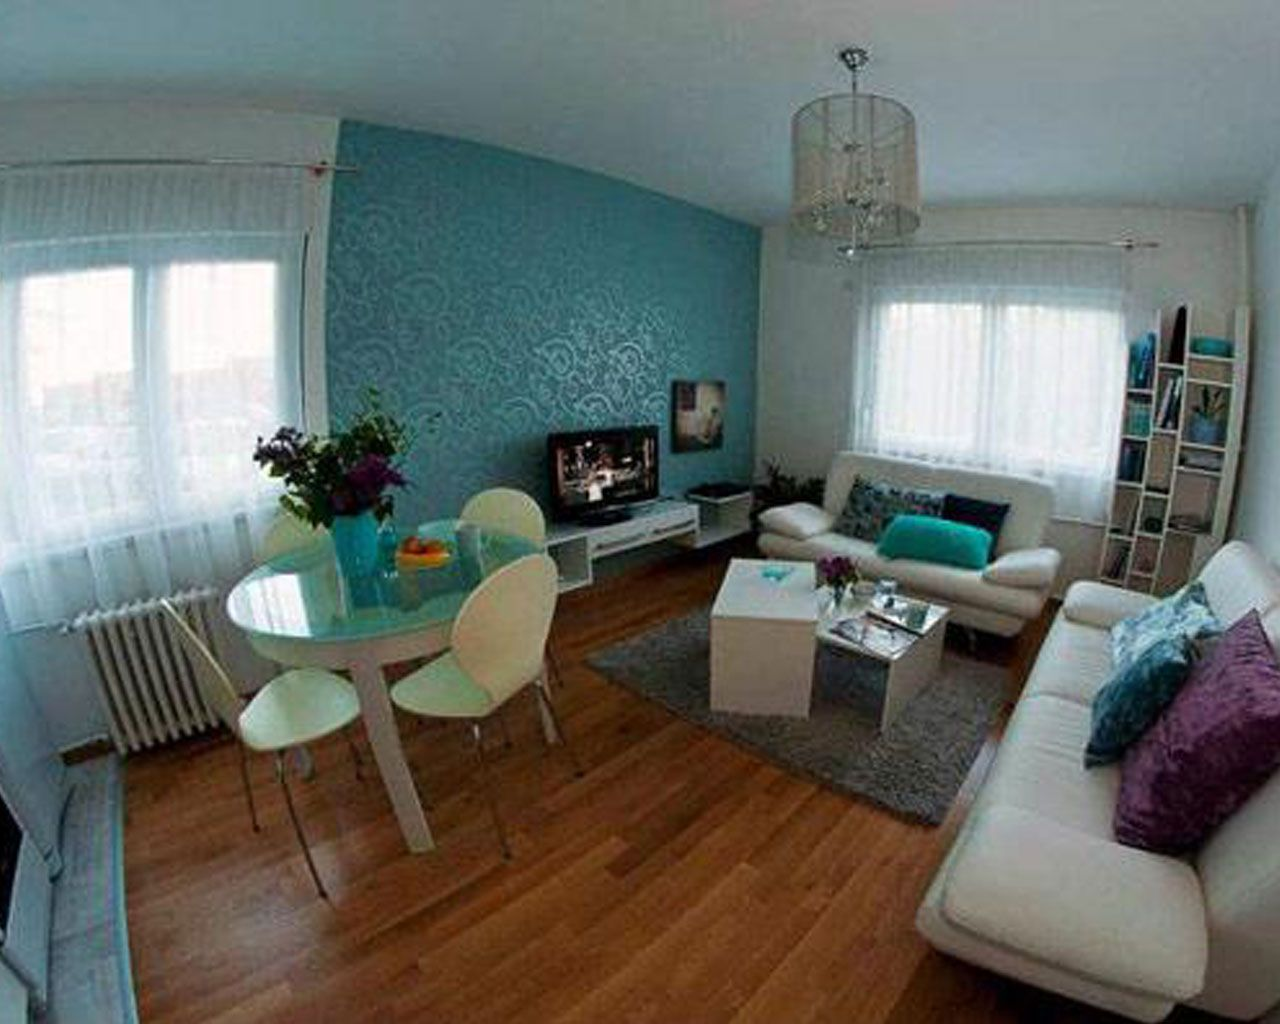 Cute living room ideas for apartments - Interior Beautiful Small Apartment Living Room Design Layout With Blue Ocean Wall Colour And Confort Cream Sofa And Blue Dining Table Contemporary Apartment